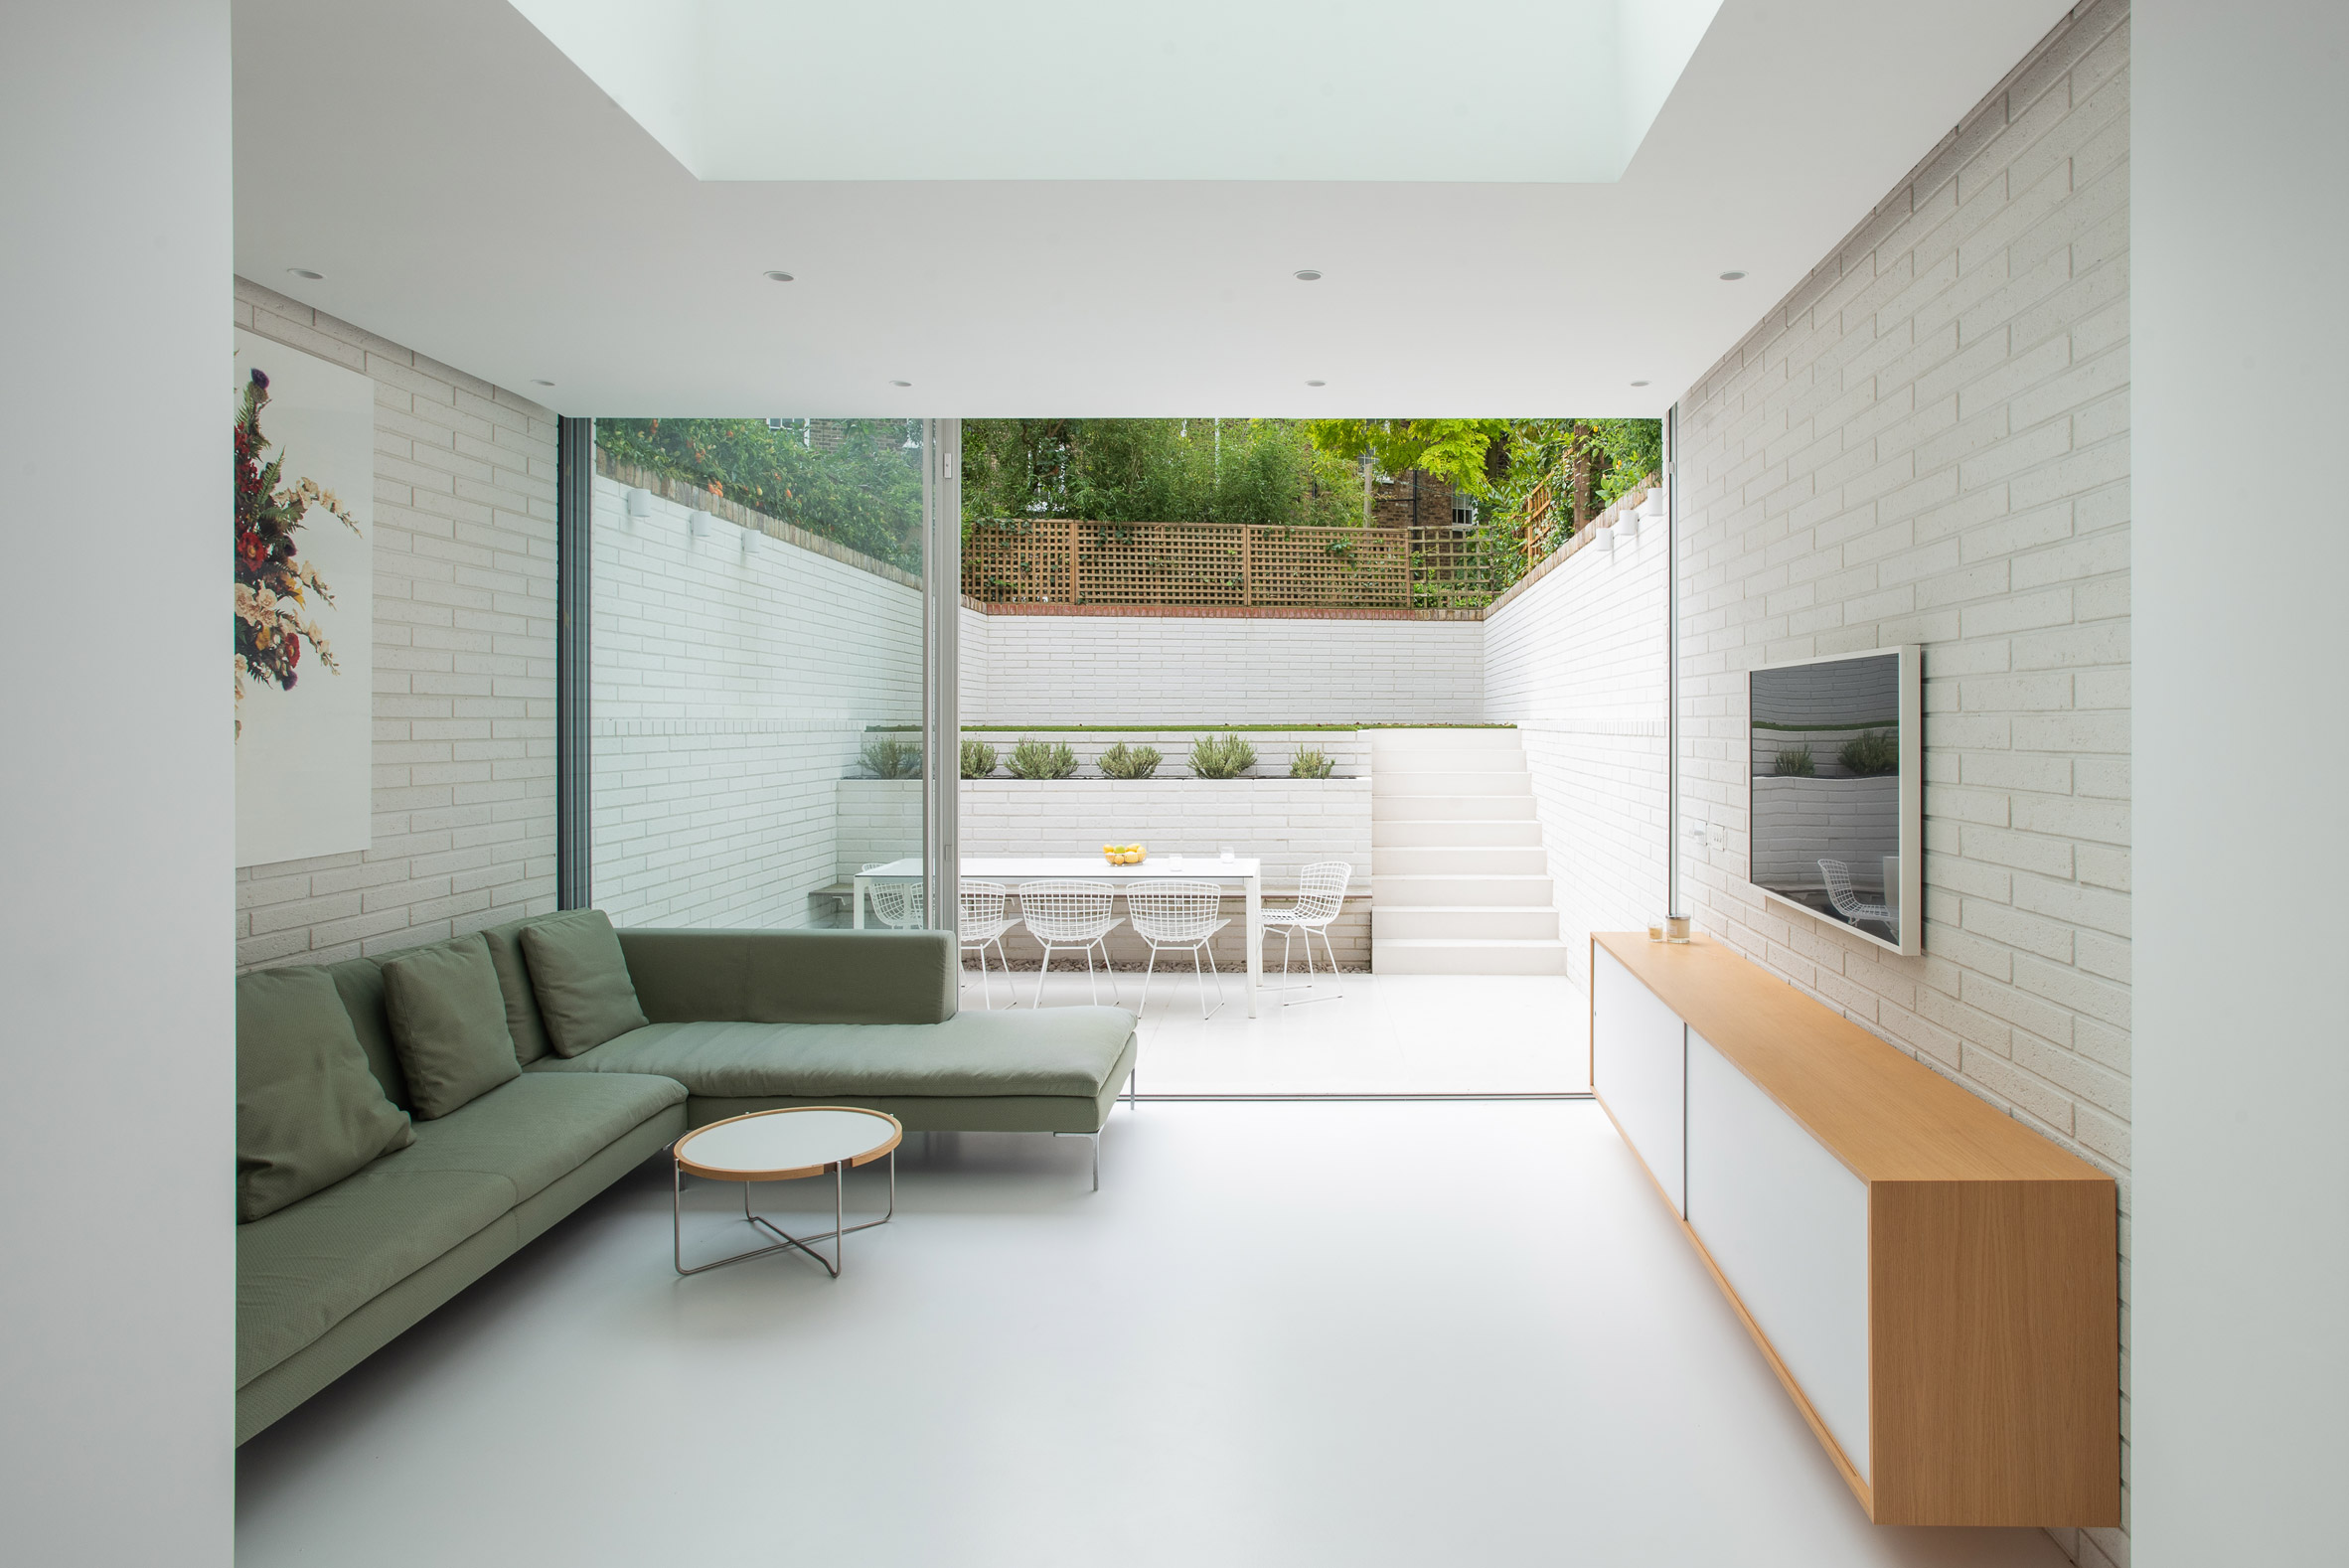 View from the interior out to the sunken garden by Moxon Architects